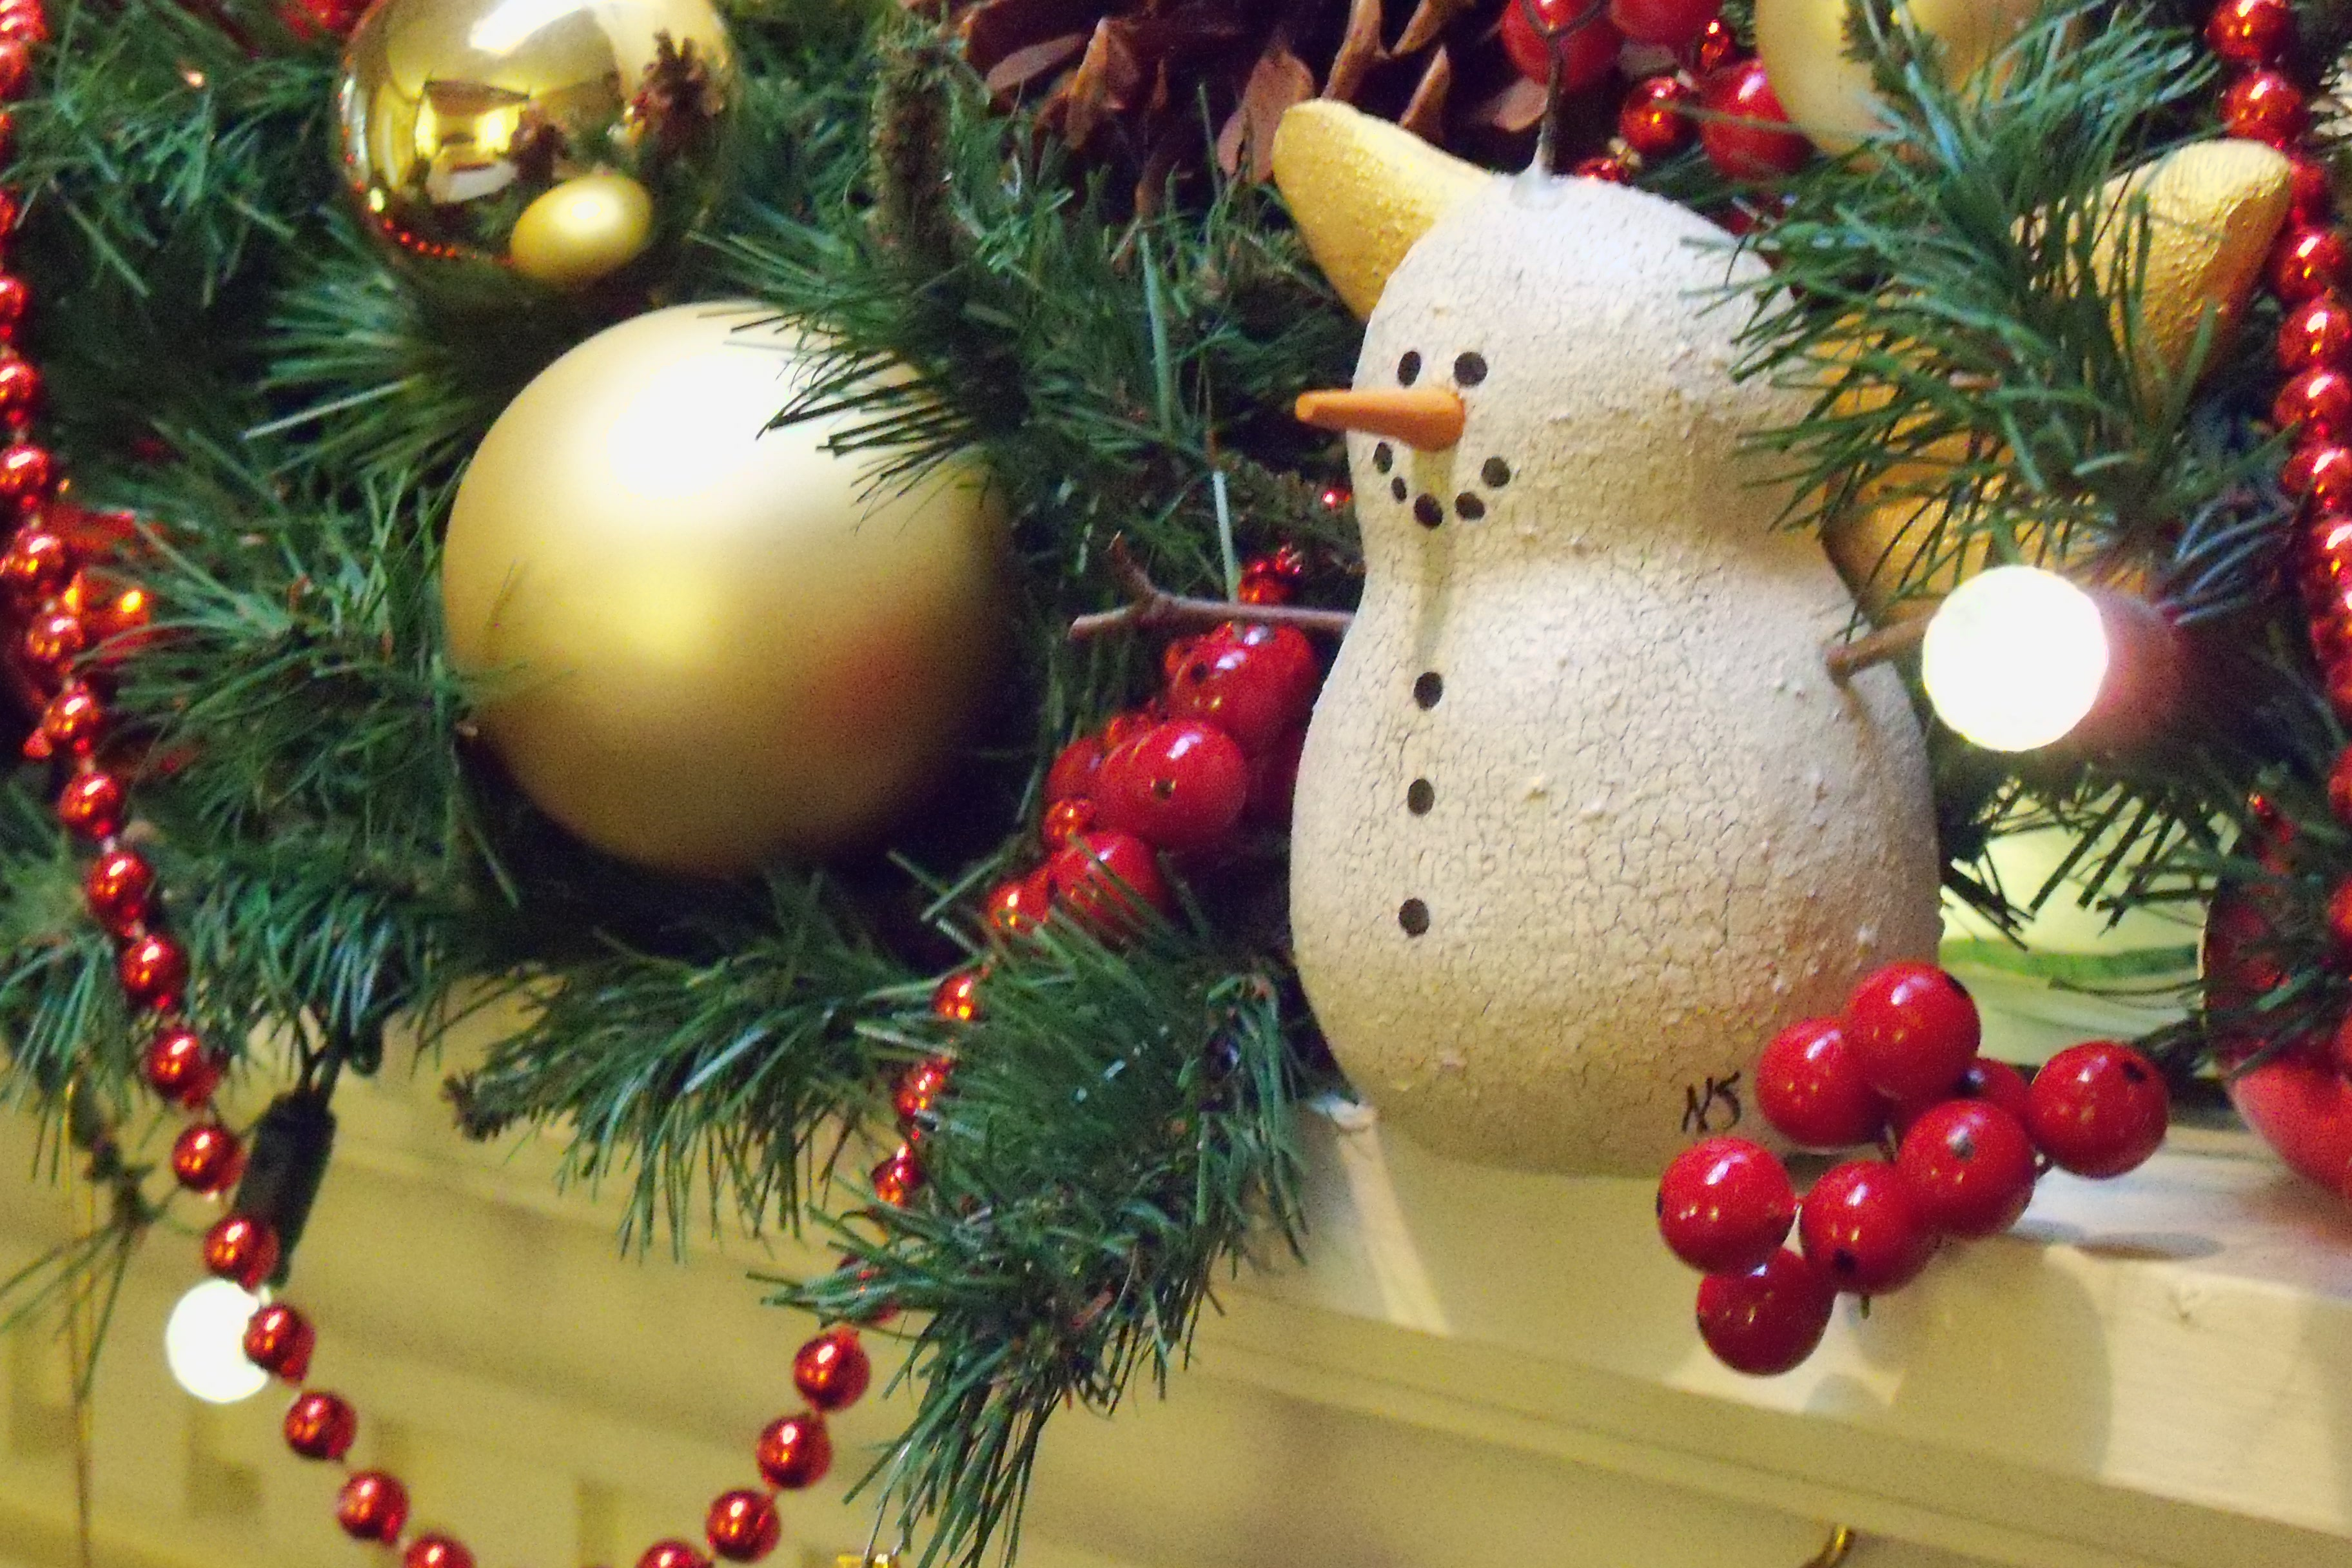 Decorative snowman ornament on decorative christmas mantle top of garland and cranberries with gold balls and lights.